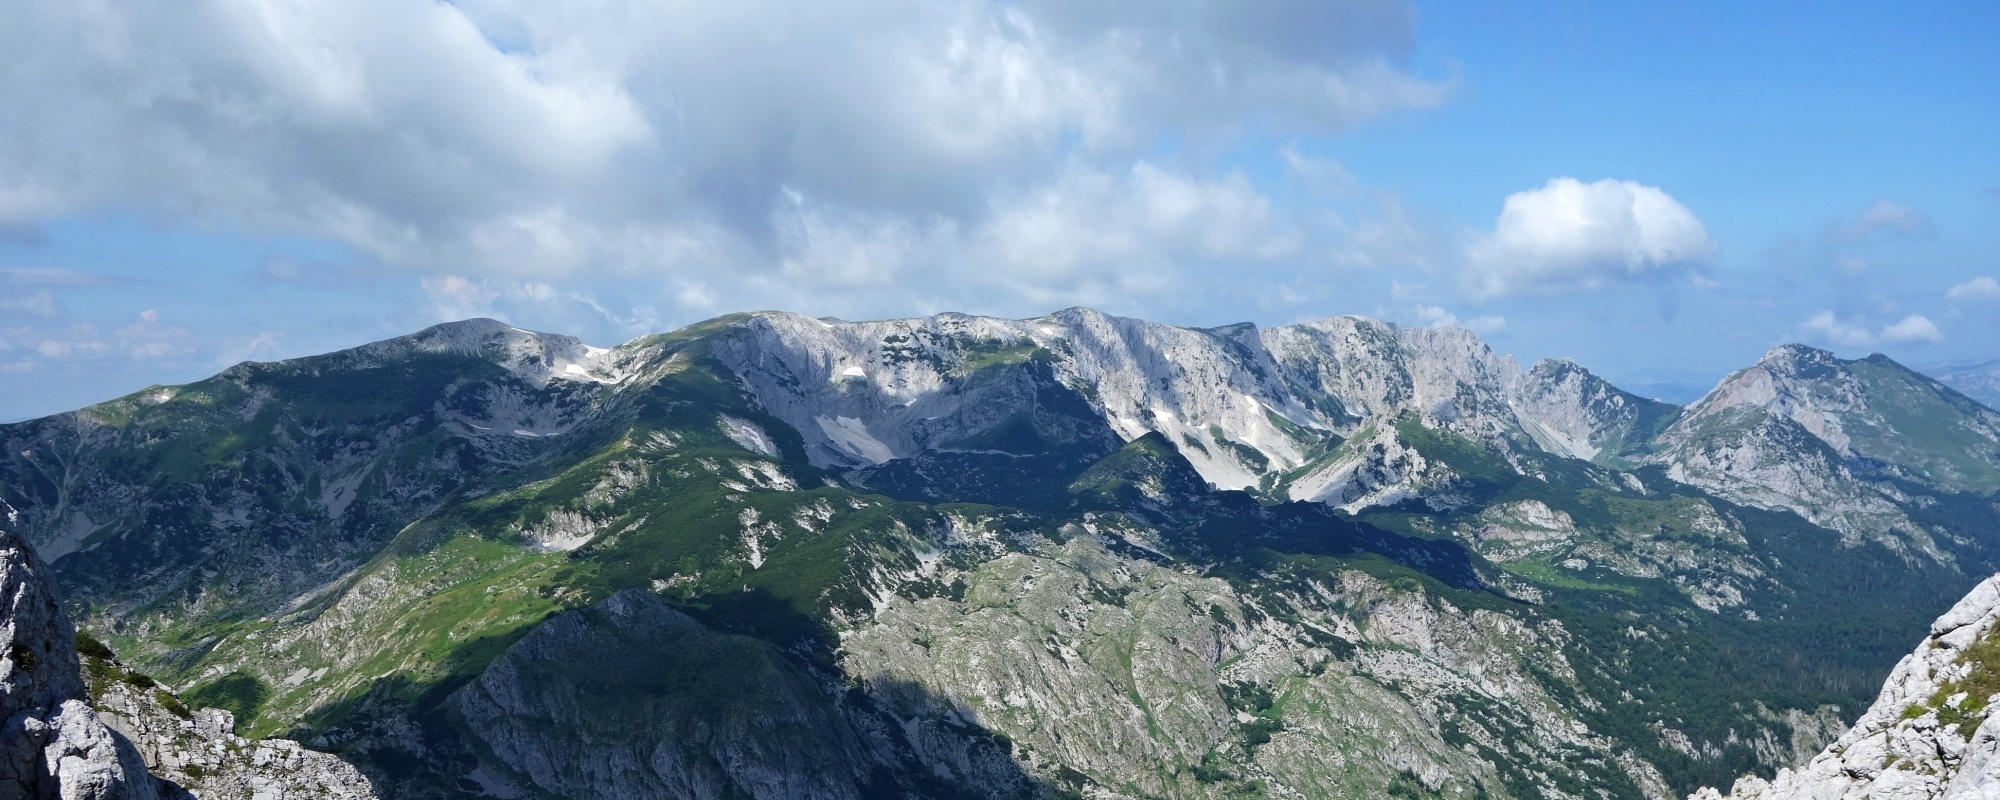 Sutjeska National Park, Bosnia and Herzegovina